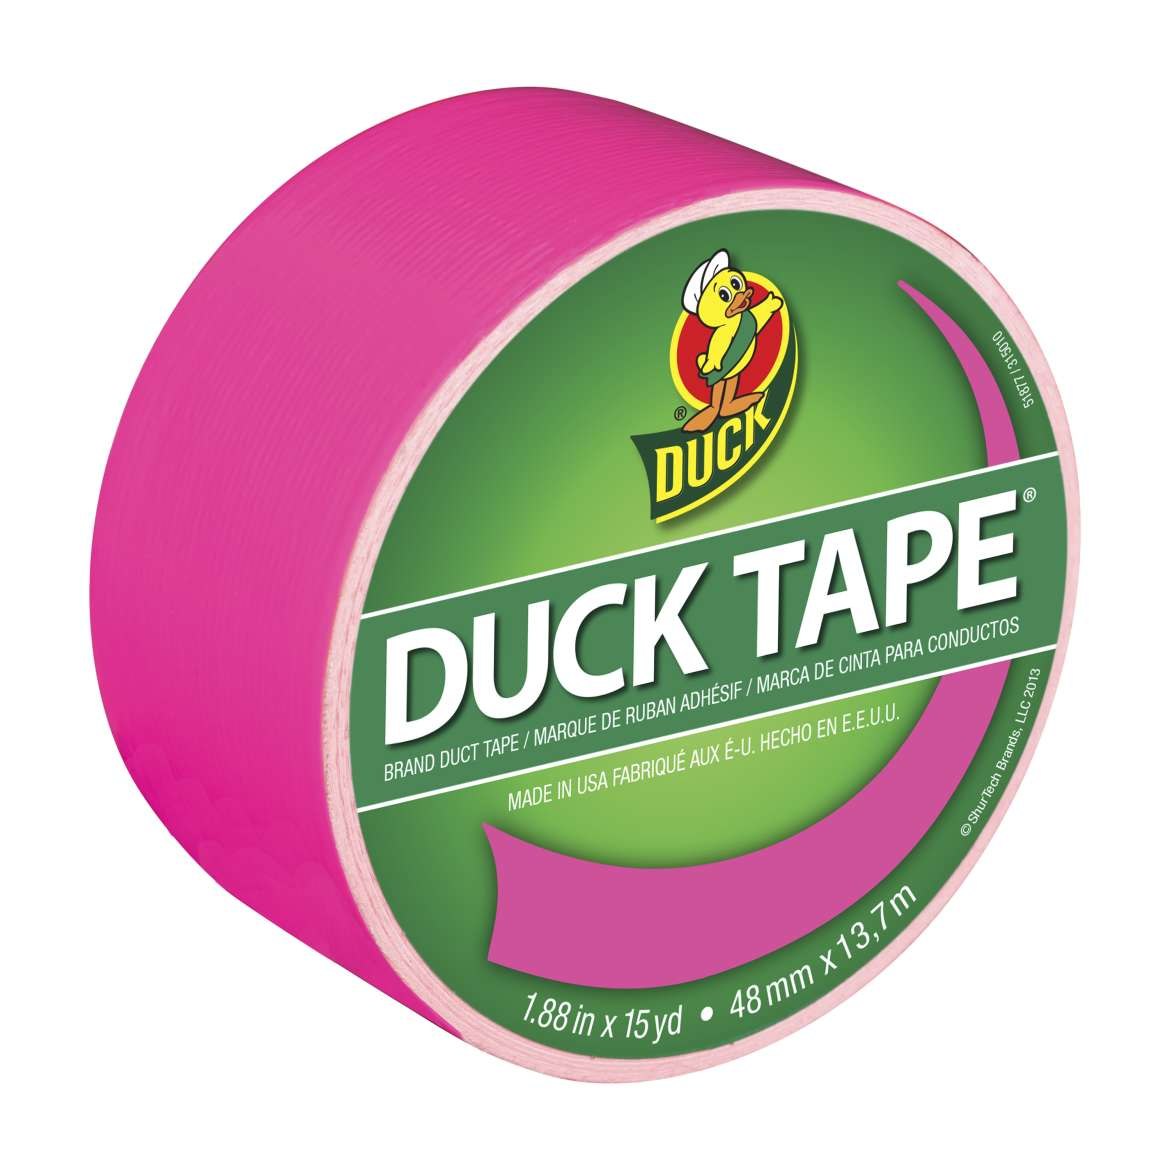 Color Duck Tape Brand Duct Tape - Funky Flamingo Pink, 1.88 in. x 20 yd.